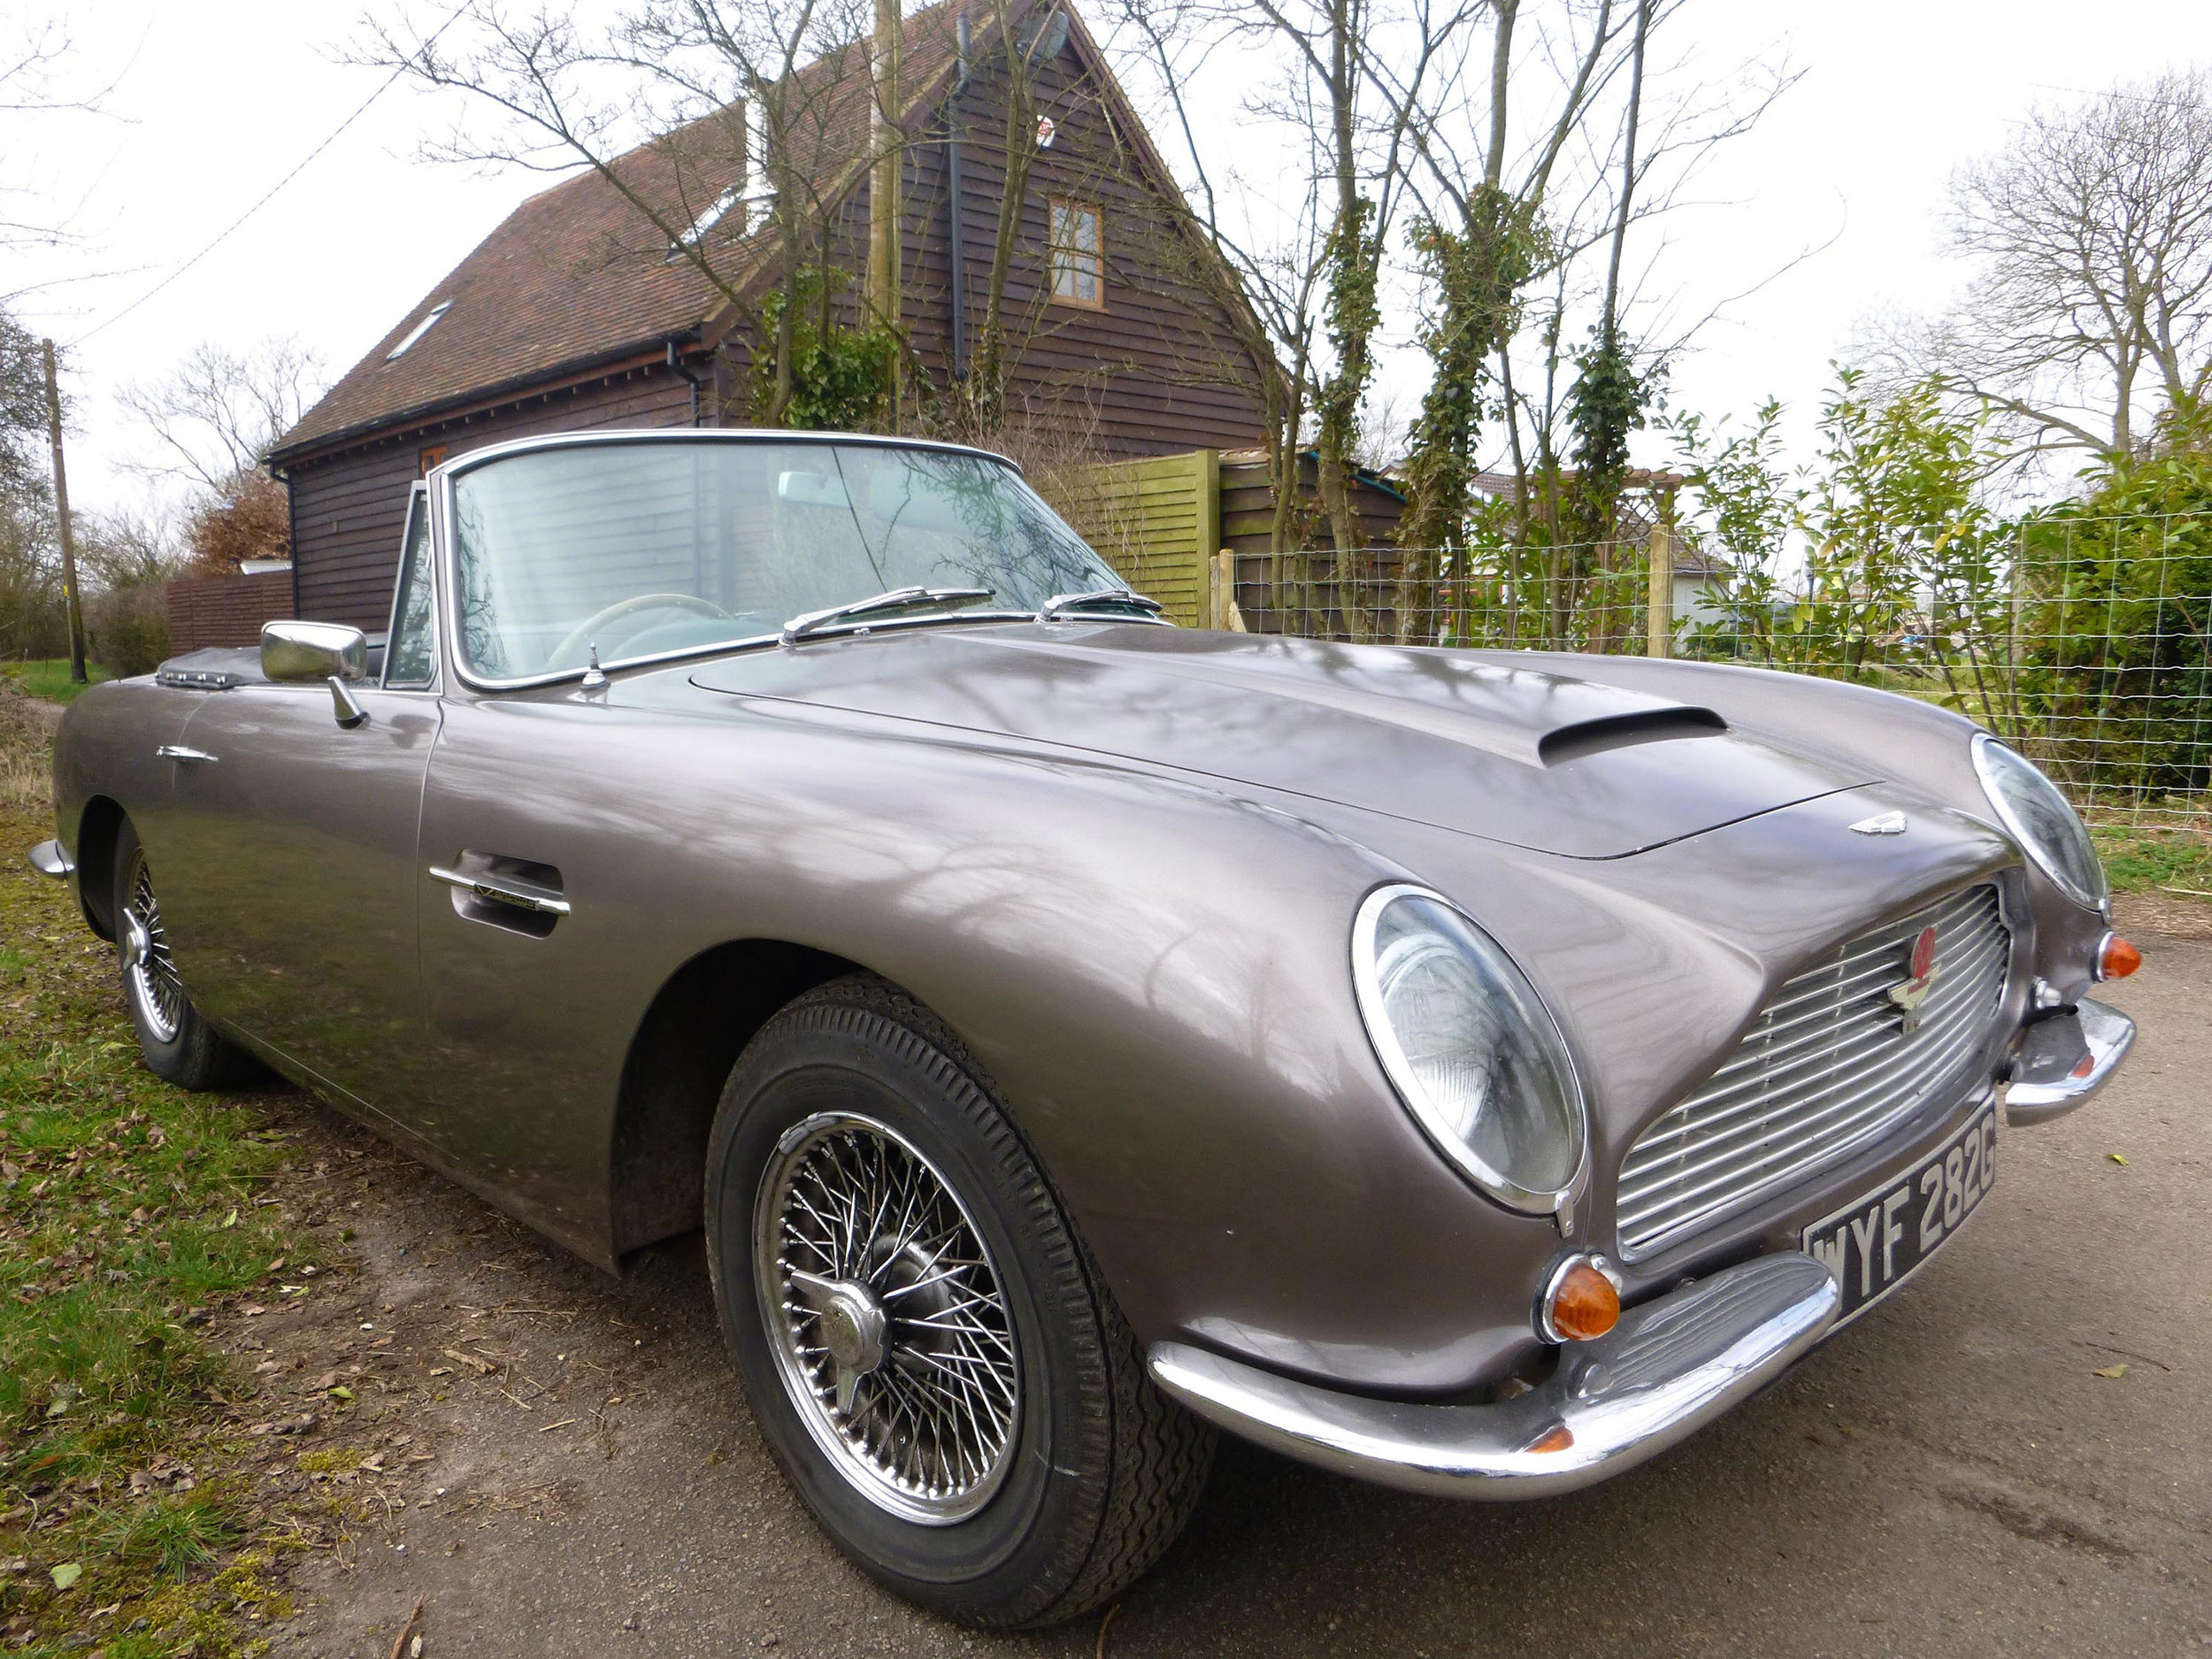 Rare Aston DB6 Volante up for auction